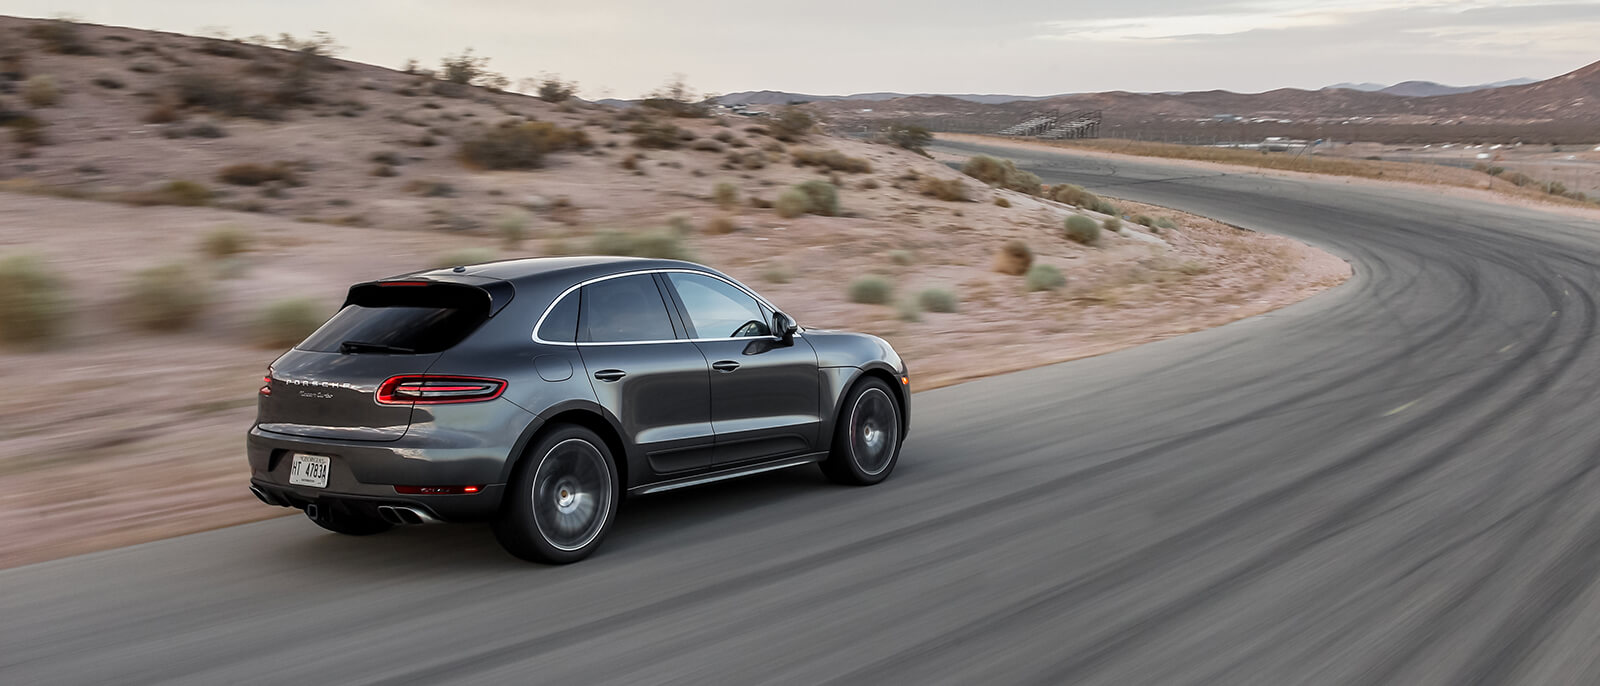 2017 Porsche Macan Turbo highway